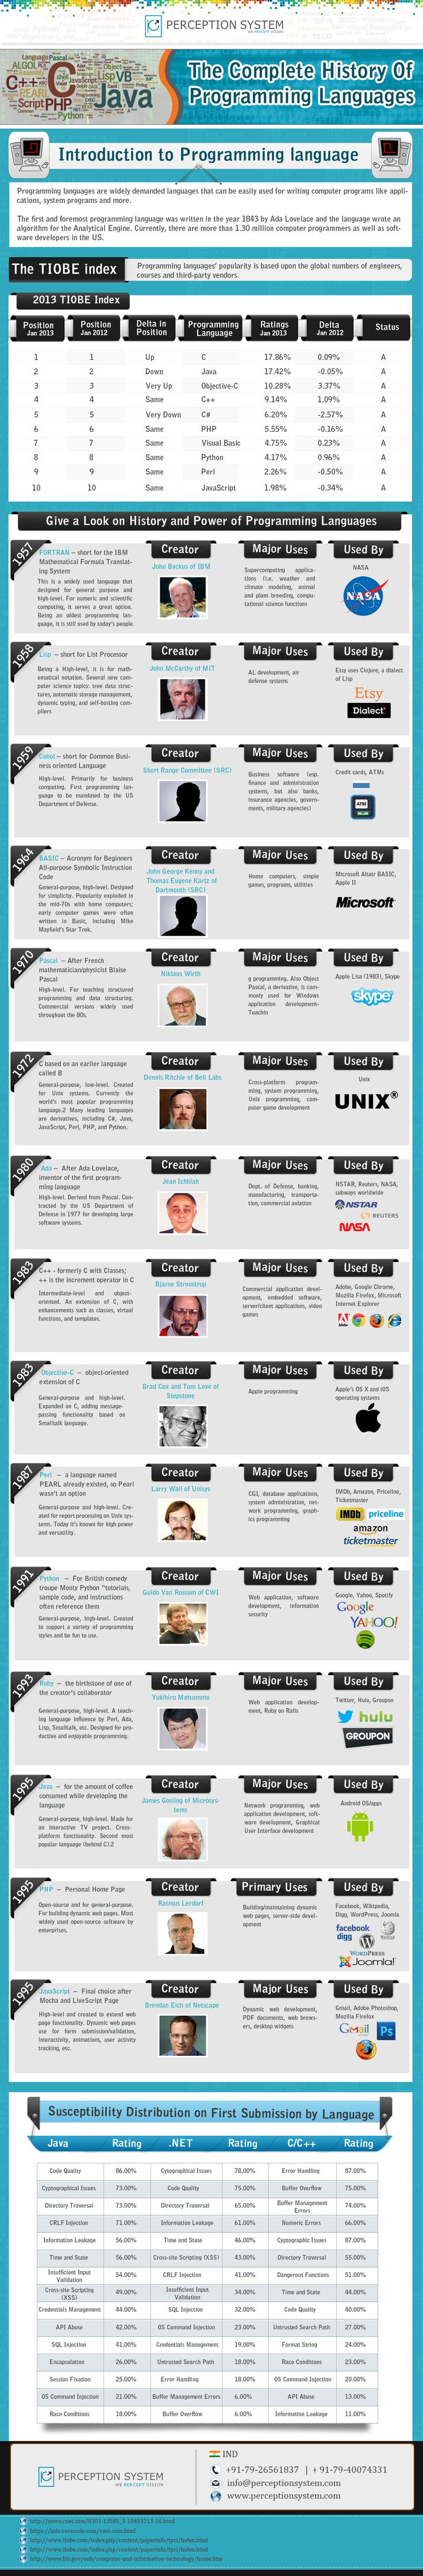 The complete history of programming languages #infographic